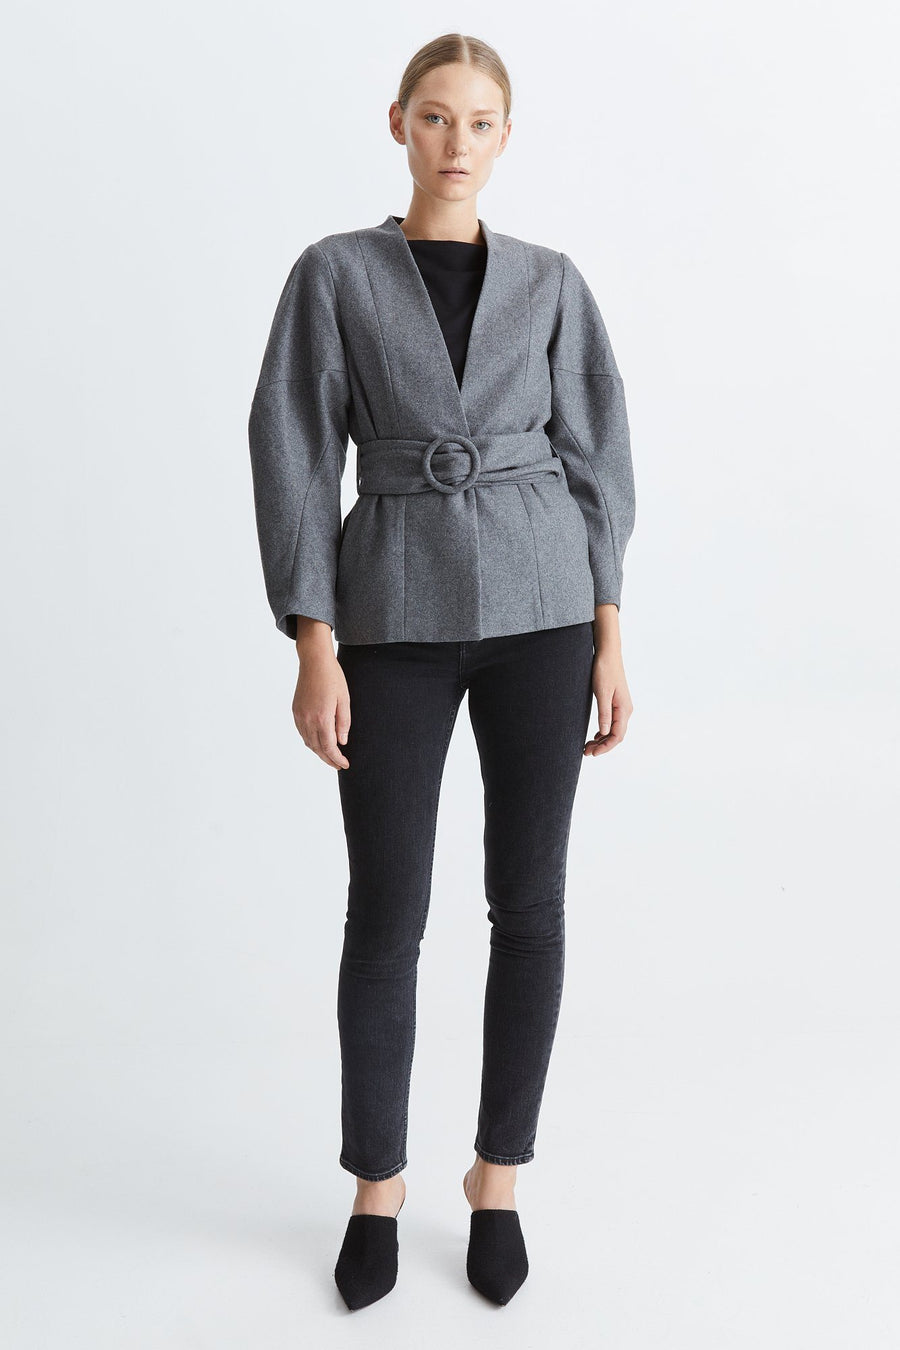 TAORMINA JACKET - LIGHT GREY